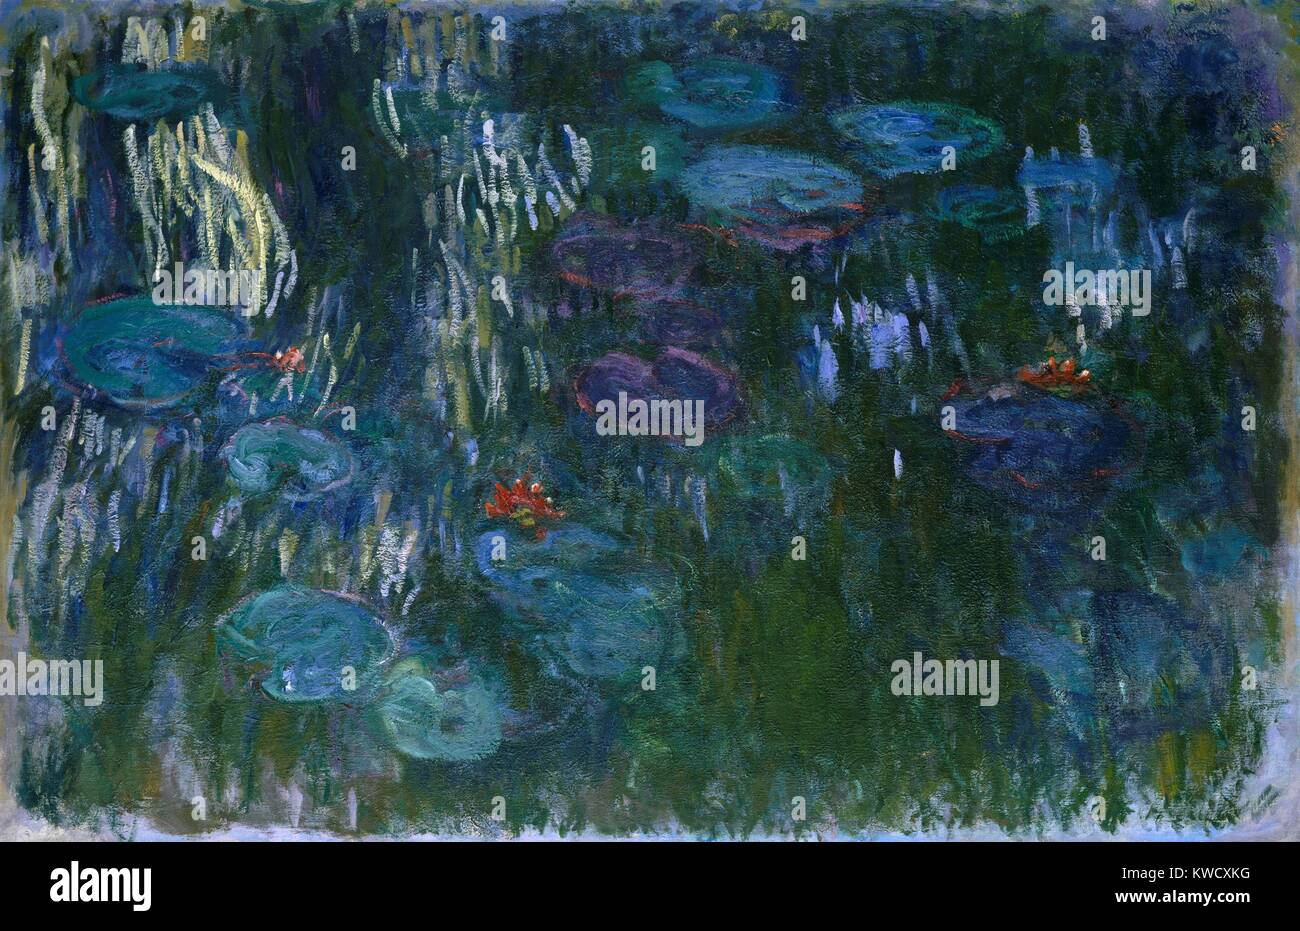 Water Lilies, by Claude Monet, 1916–19, French impressionist painting, oil on canvas. In his last decade, Monet - Stock Image